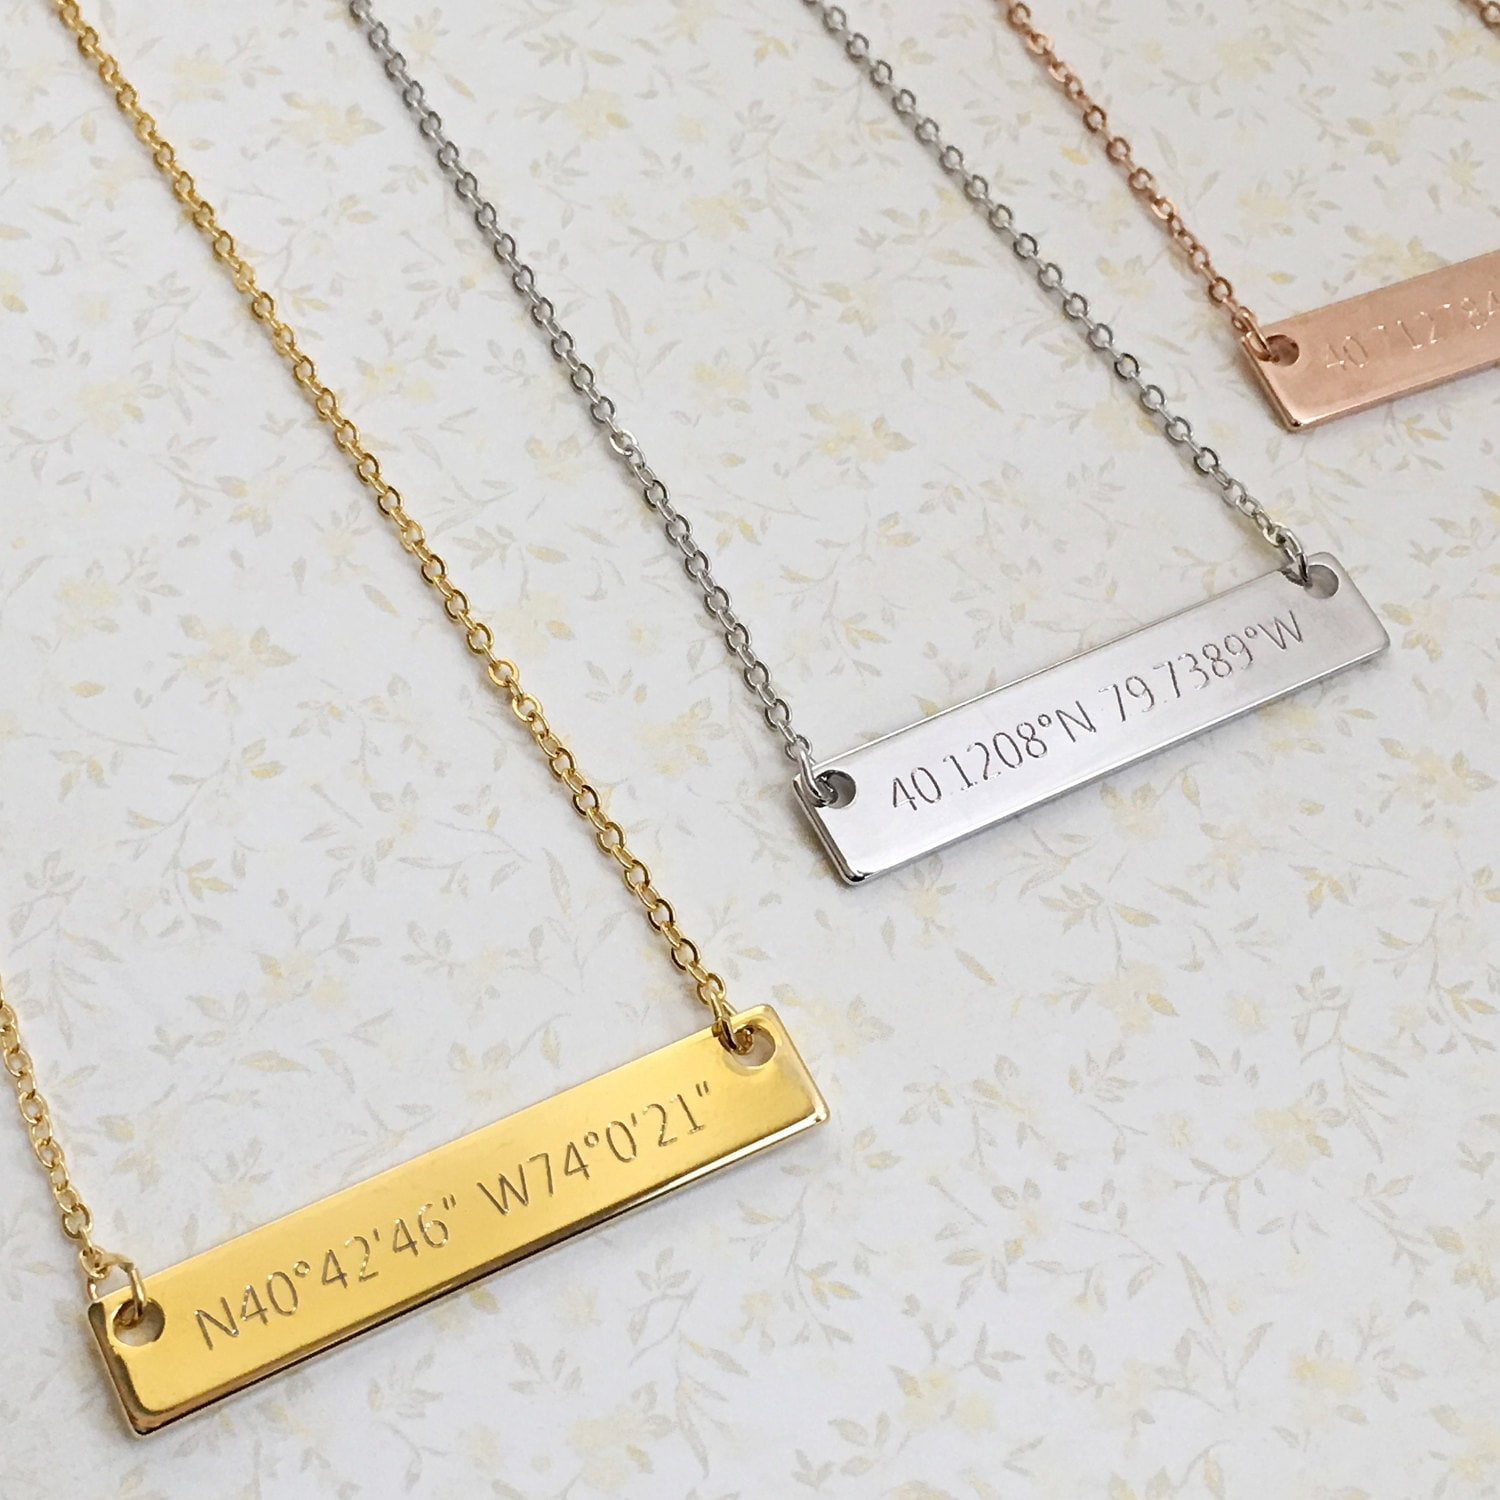 Gps Coordinates Necklace: Engraved Necklaces: Custom Coordinates Necklace Bar Necklace